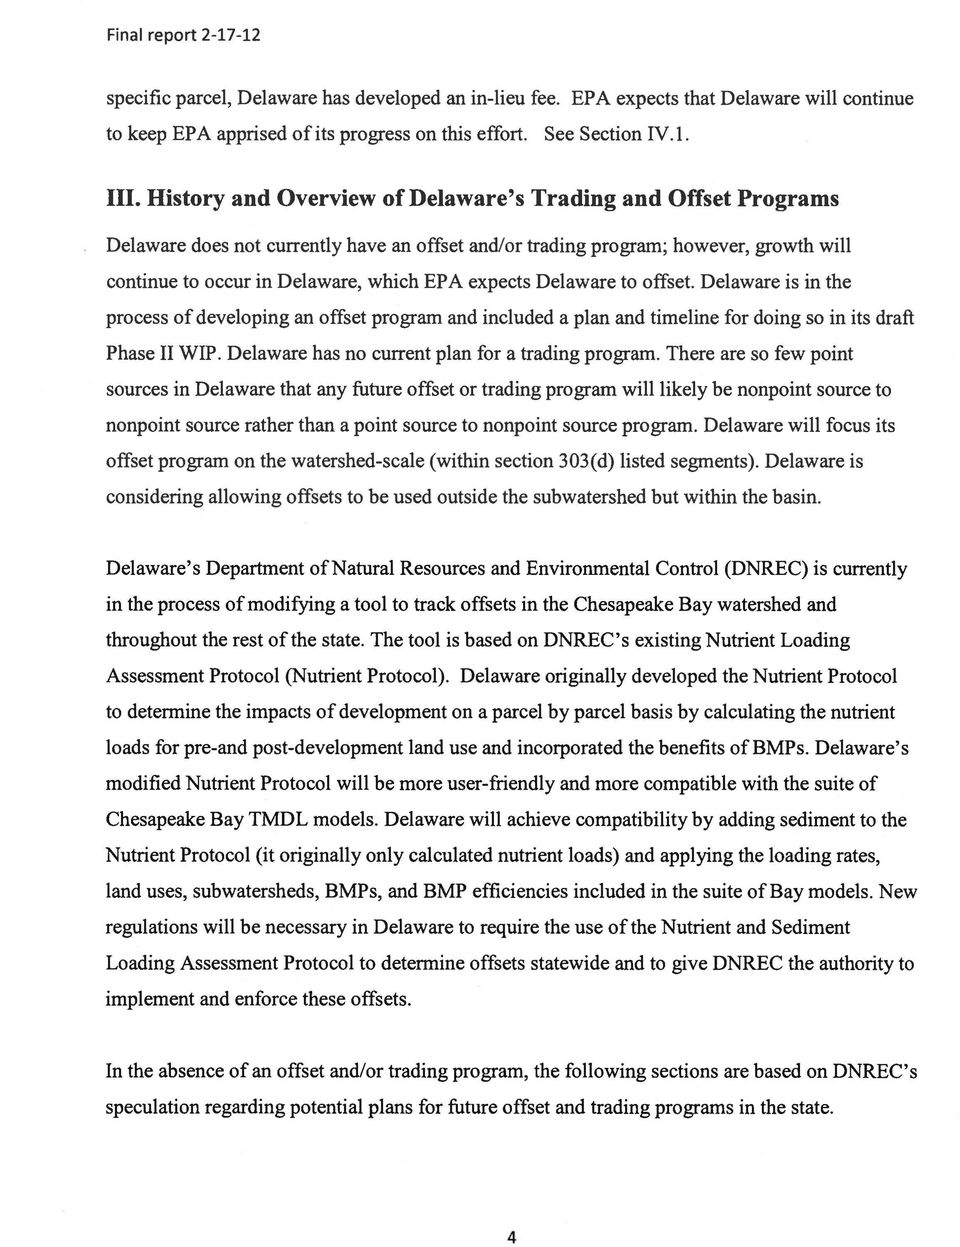 Delaware to offset. Delaware is in the process ofdeveloping an offset program and included a plan and timeline for doing so in its draft Phase II WIP.